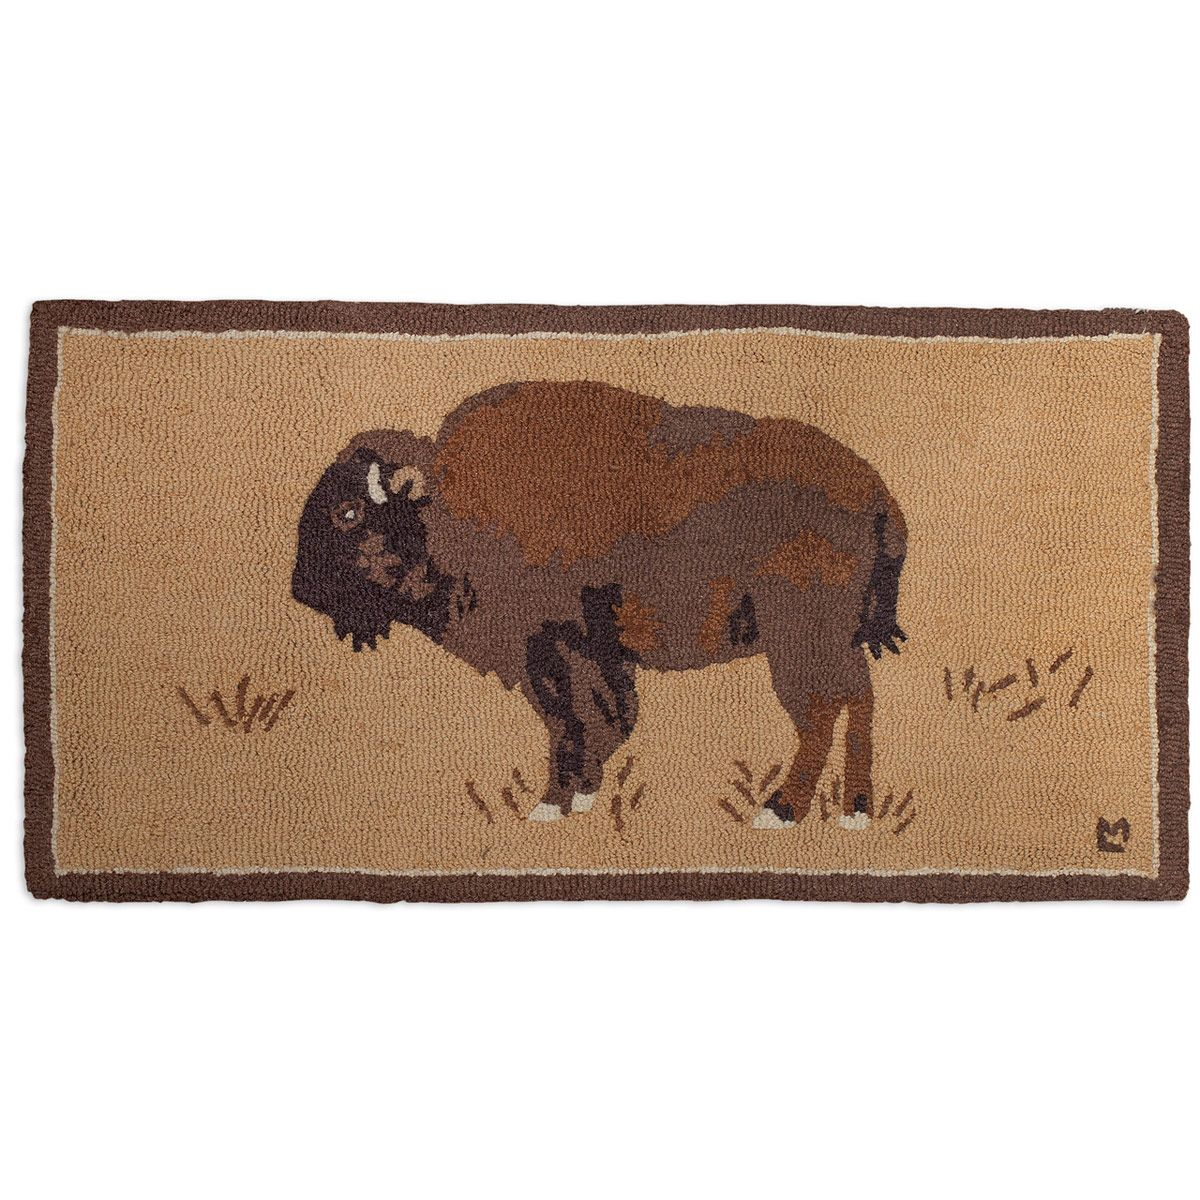 Buffalo on Gold Hooked Wool Accent Rug